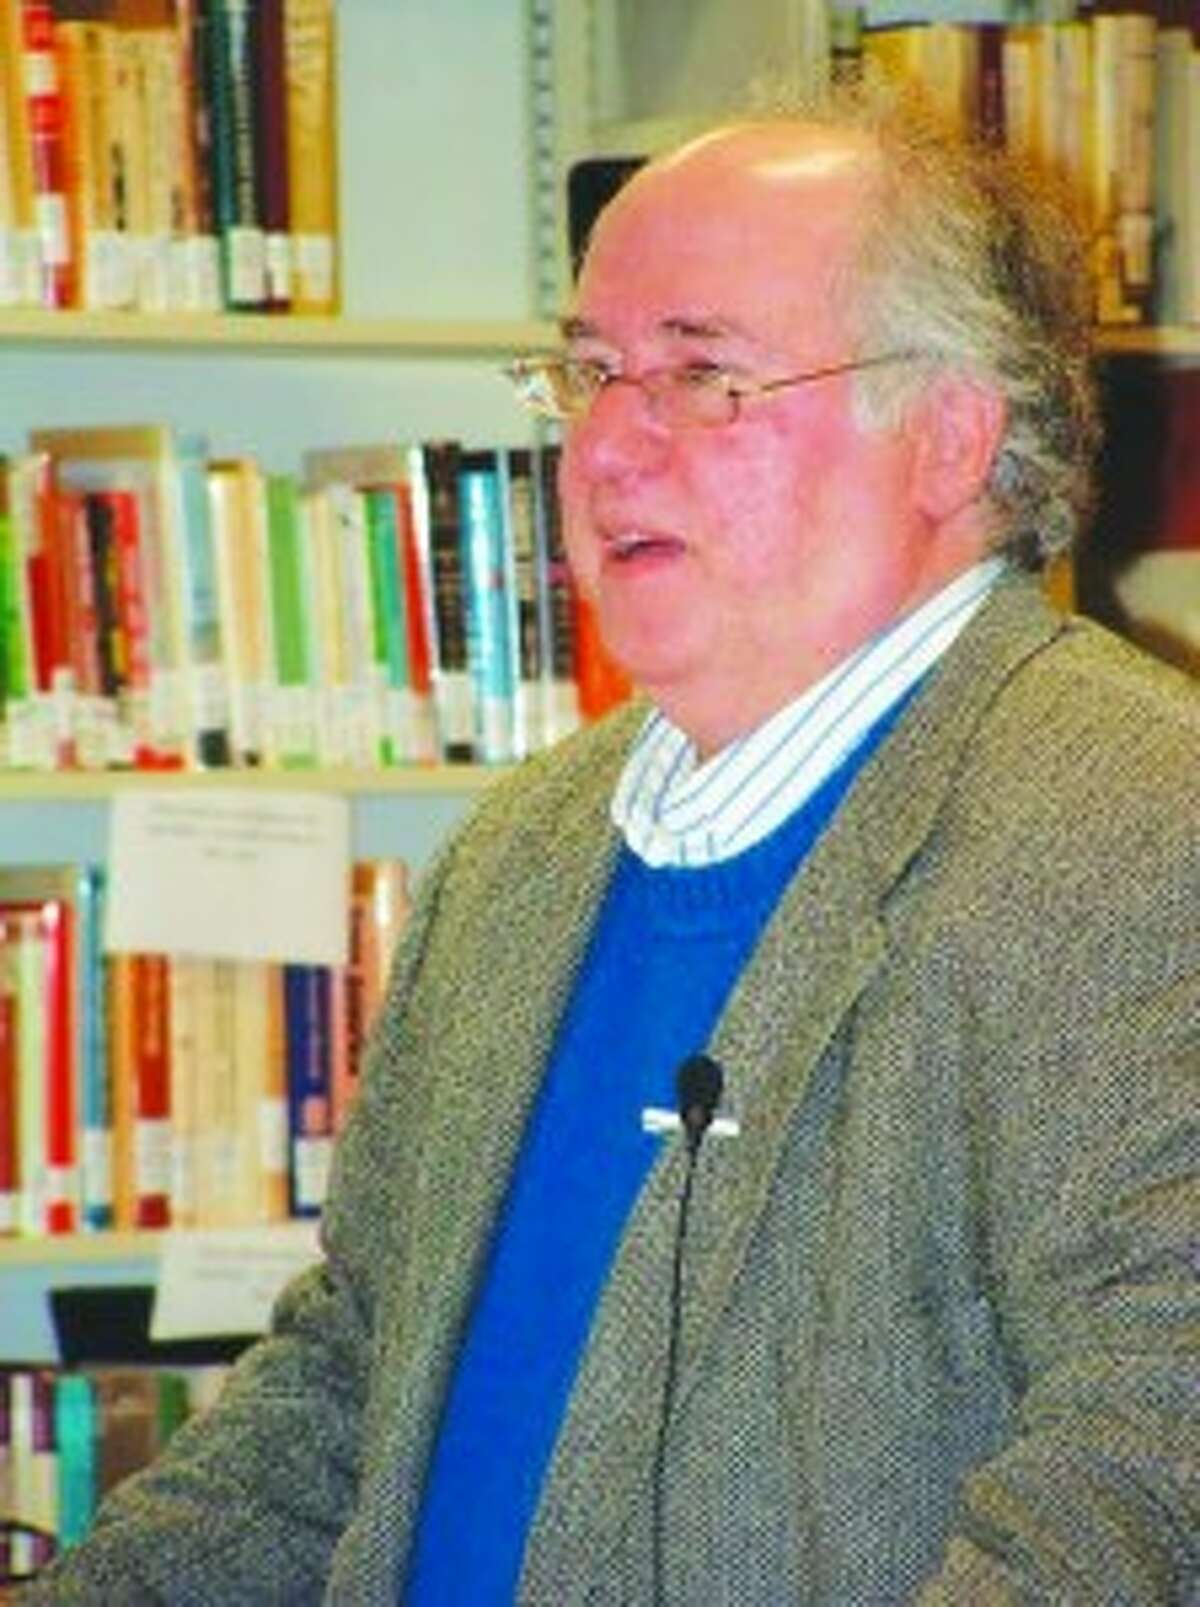 American Classics: Al Bryant makes a presentation on Mark Twain's prolific career as an author at a community program held at the Darcy Library in Beulah.